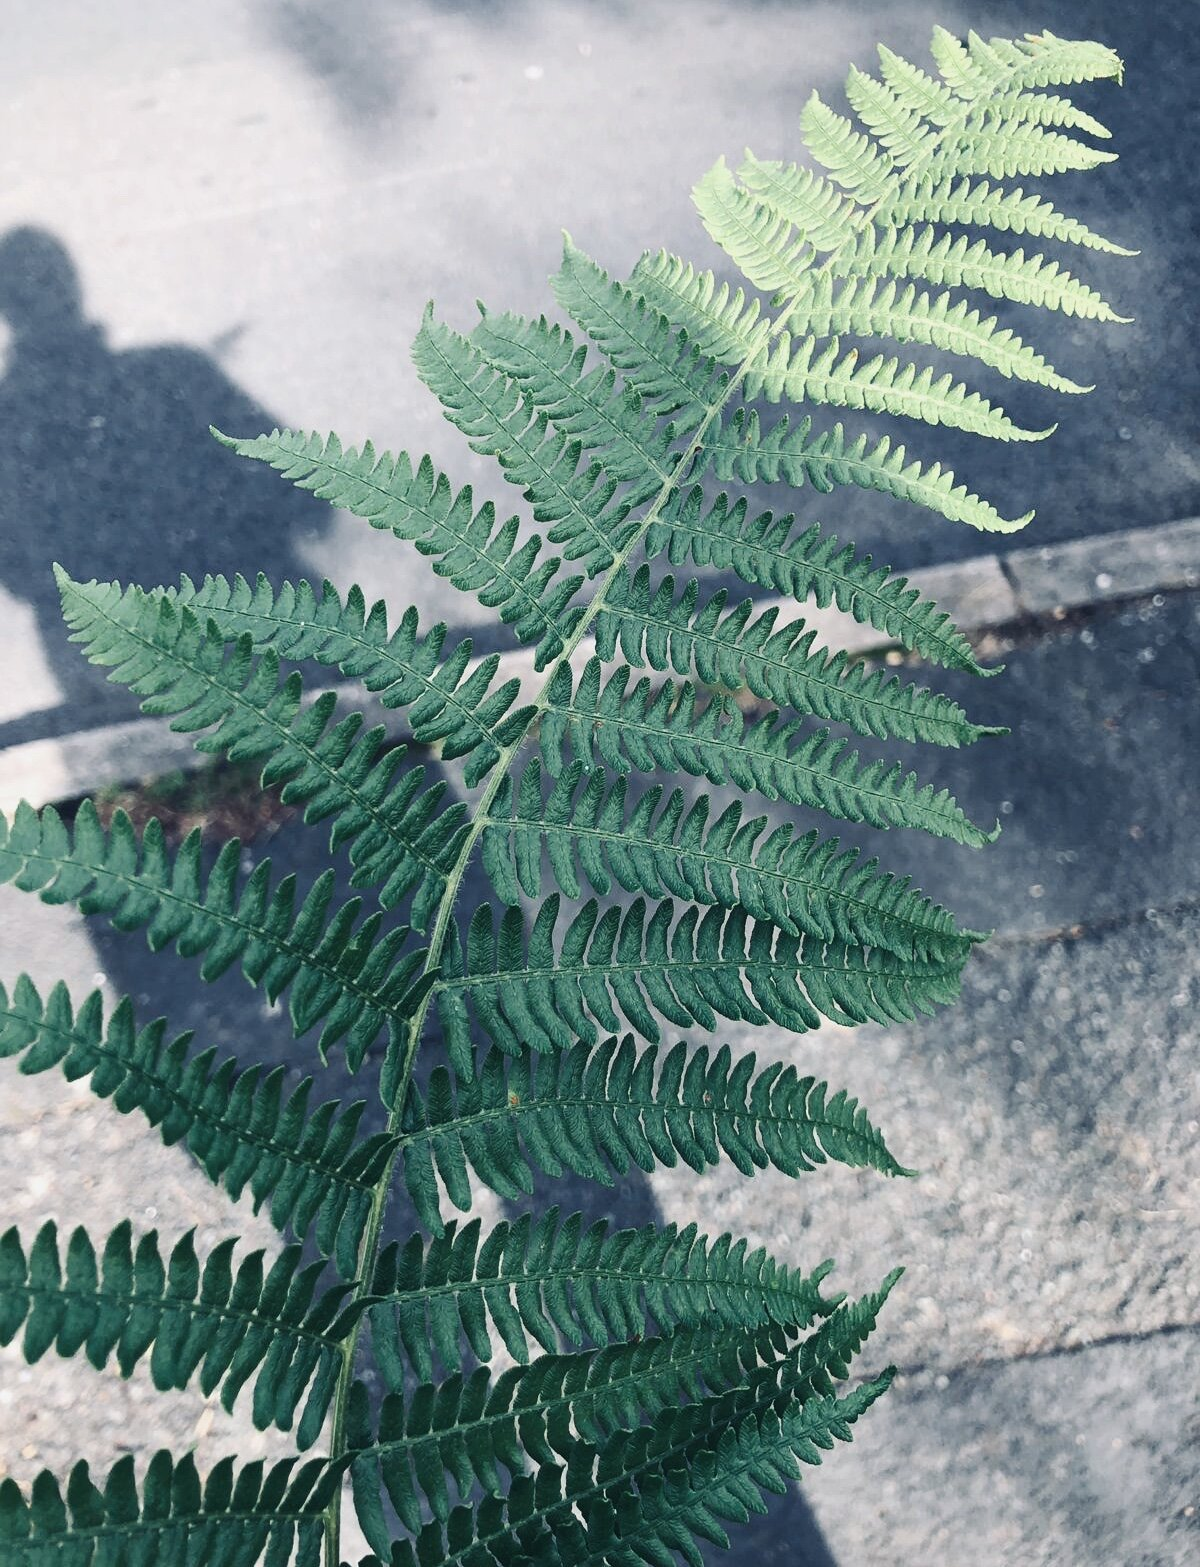 The Fern - No matter what, you must find the strength to carry on….Through adversity and life's ups and down look forward to telling your testimony to others. Let them know that GOD protected you in a place where you had no one. A place where like a pant, you were still able to grow. GOD is the water for your soil.Fe